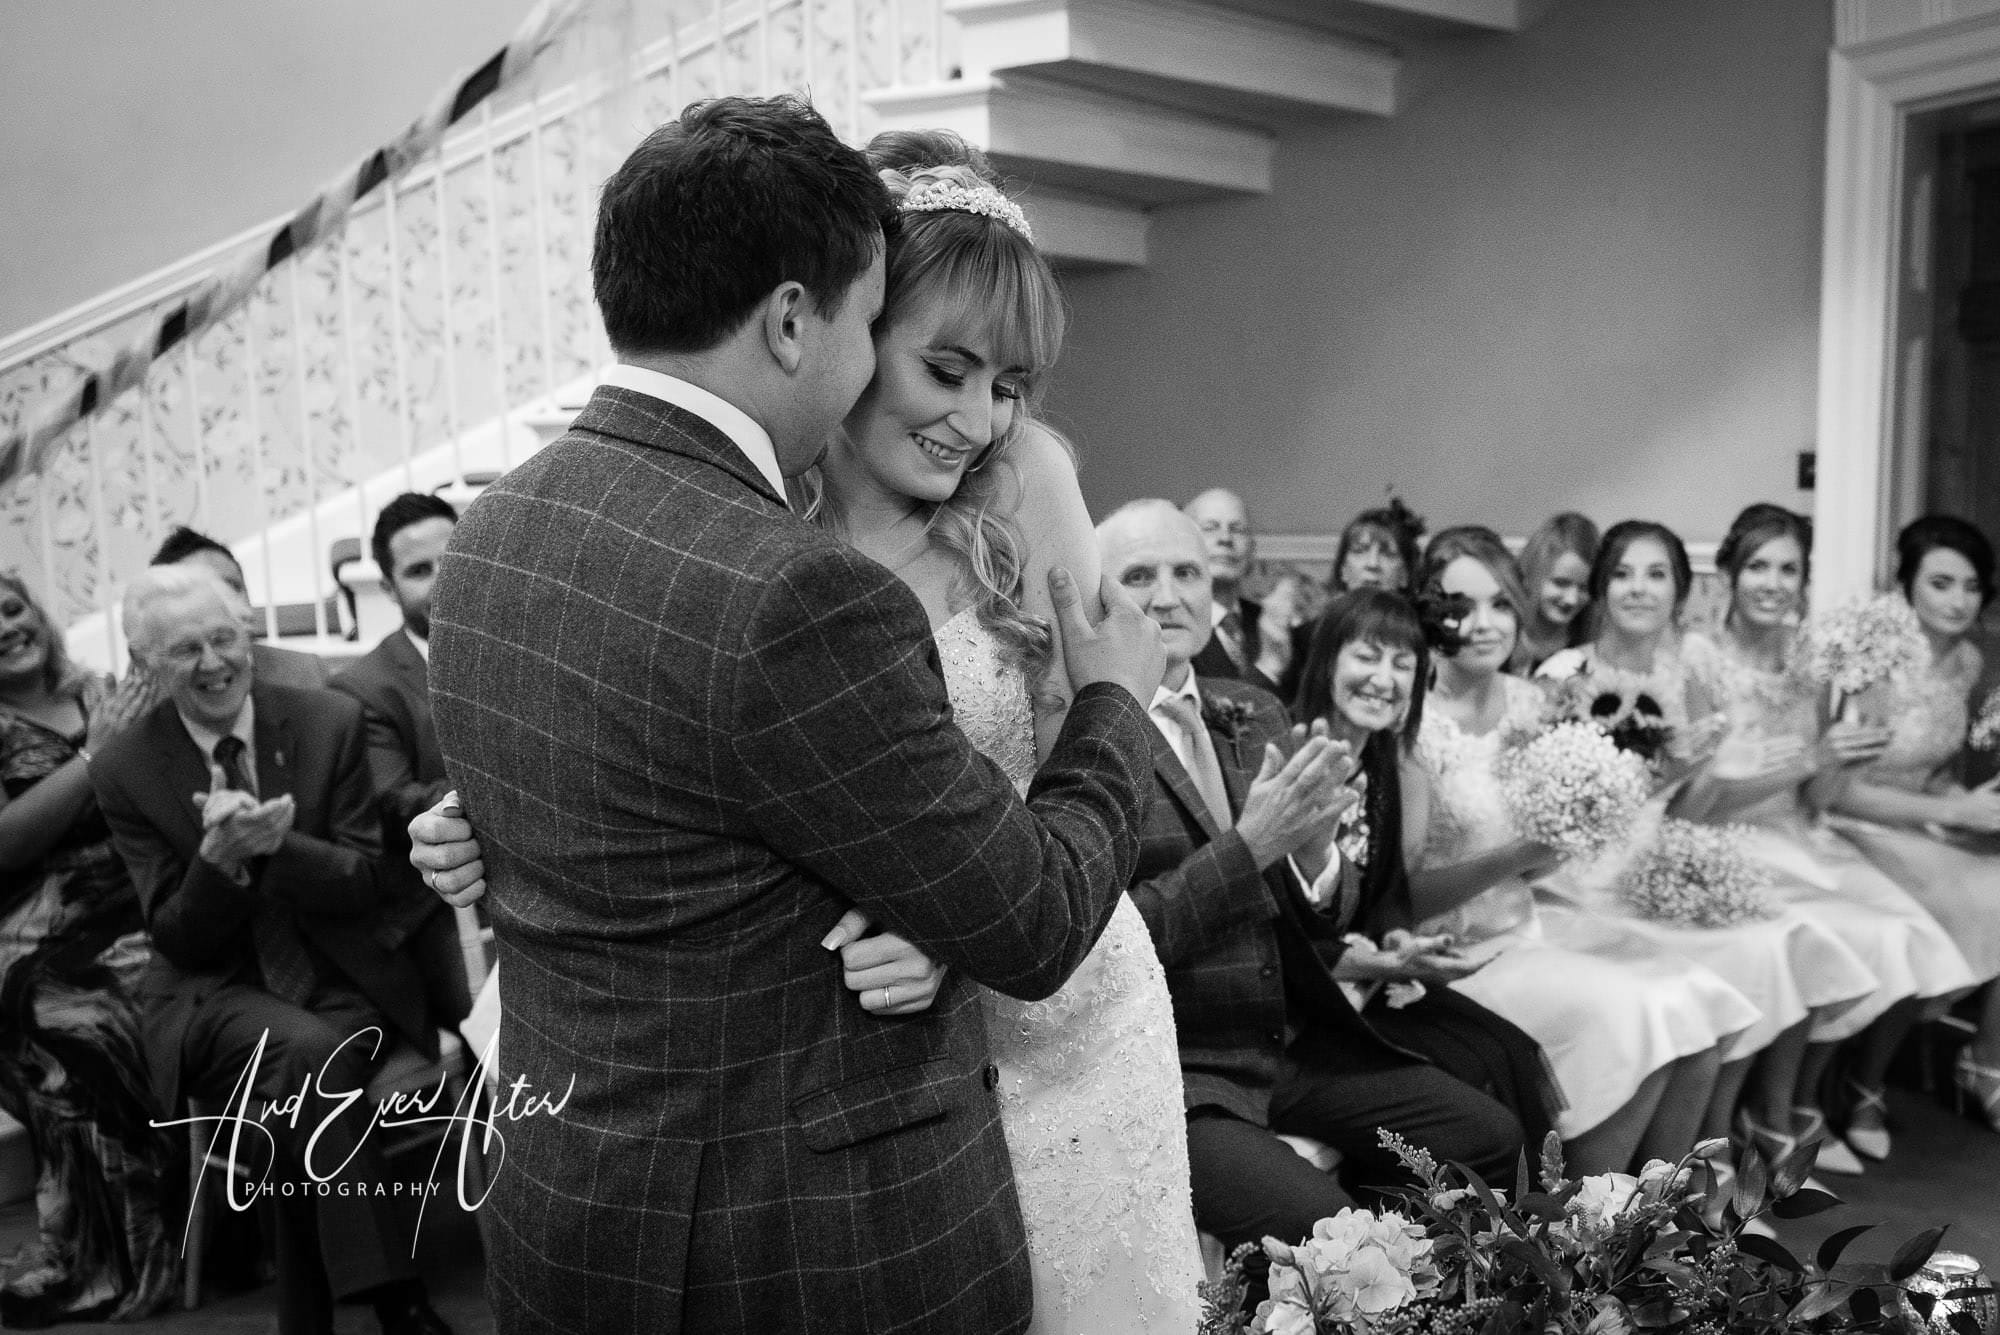 Middleton Lodge Wedding Ceremony, And Ever After Photography